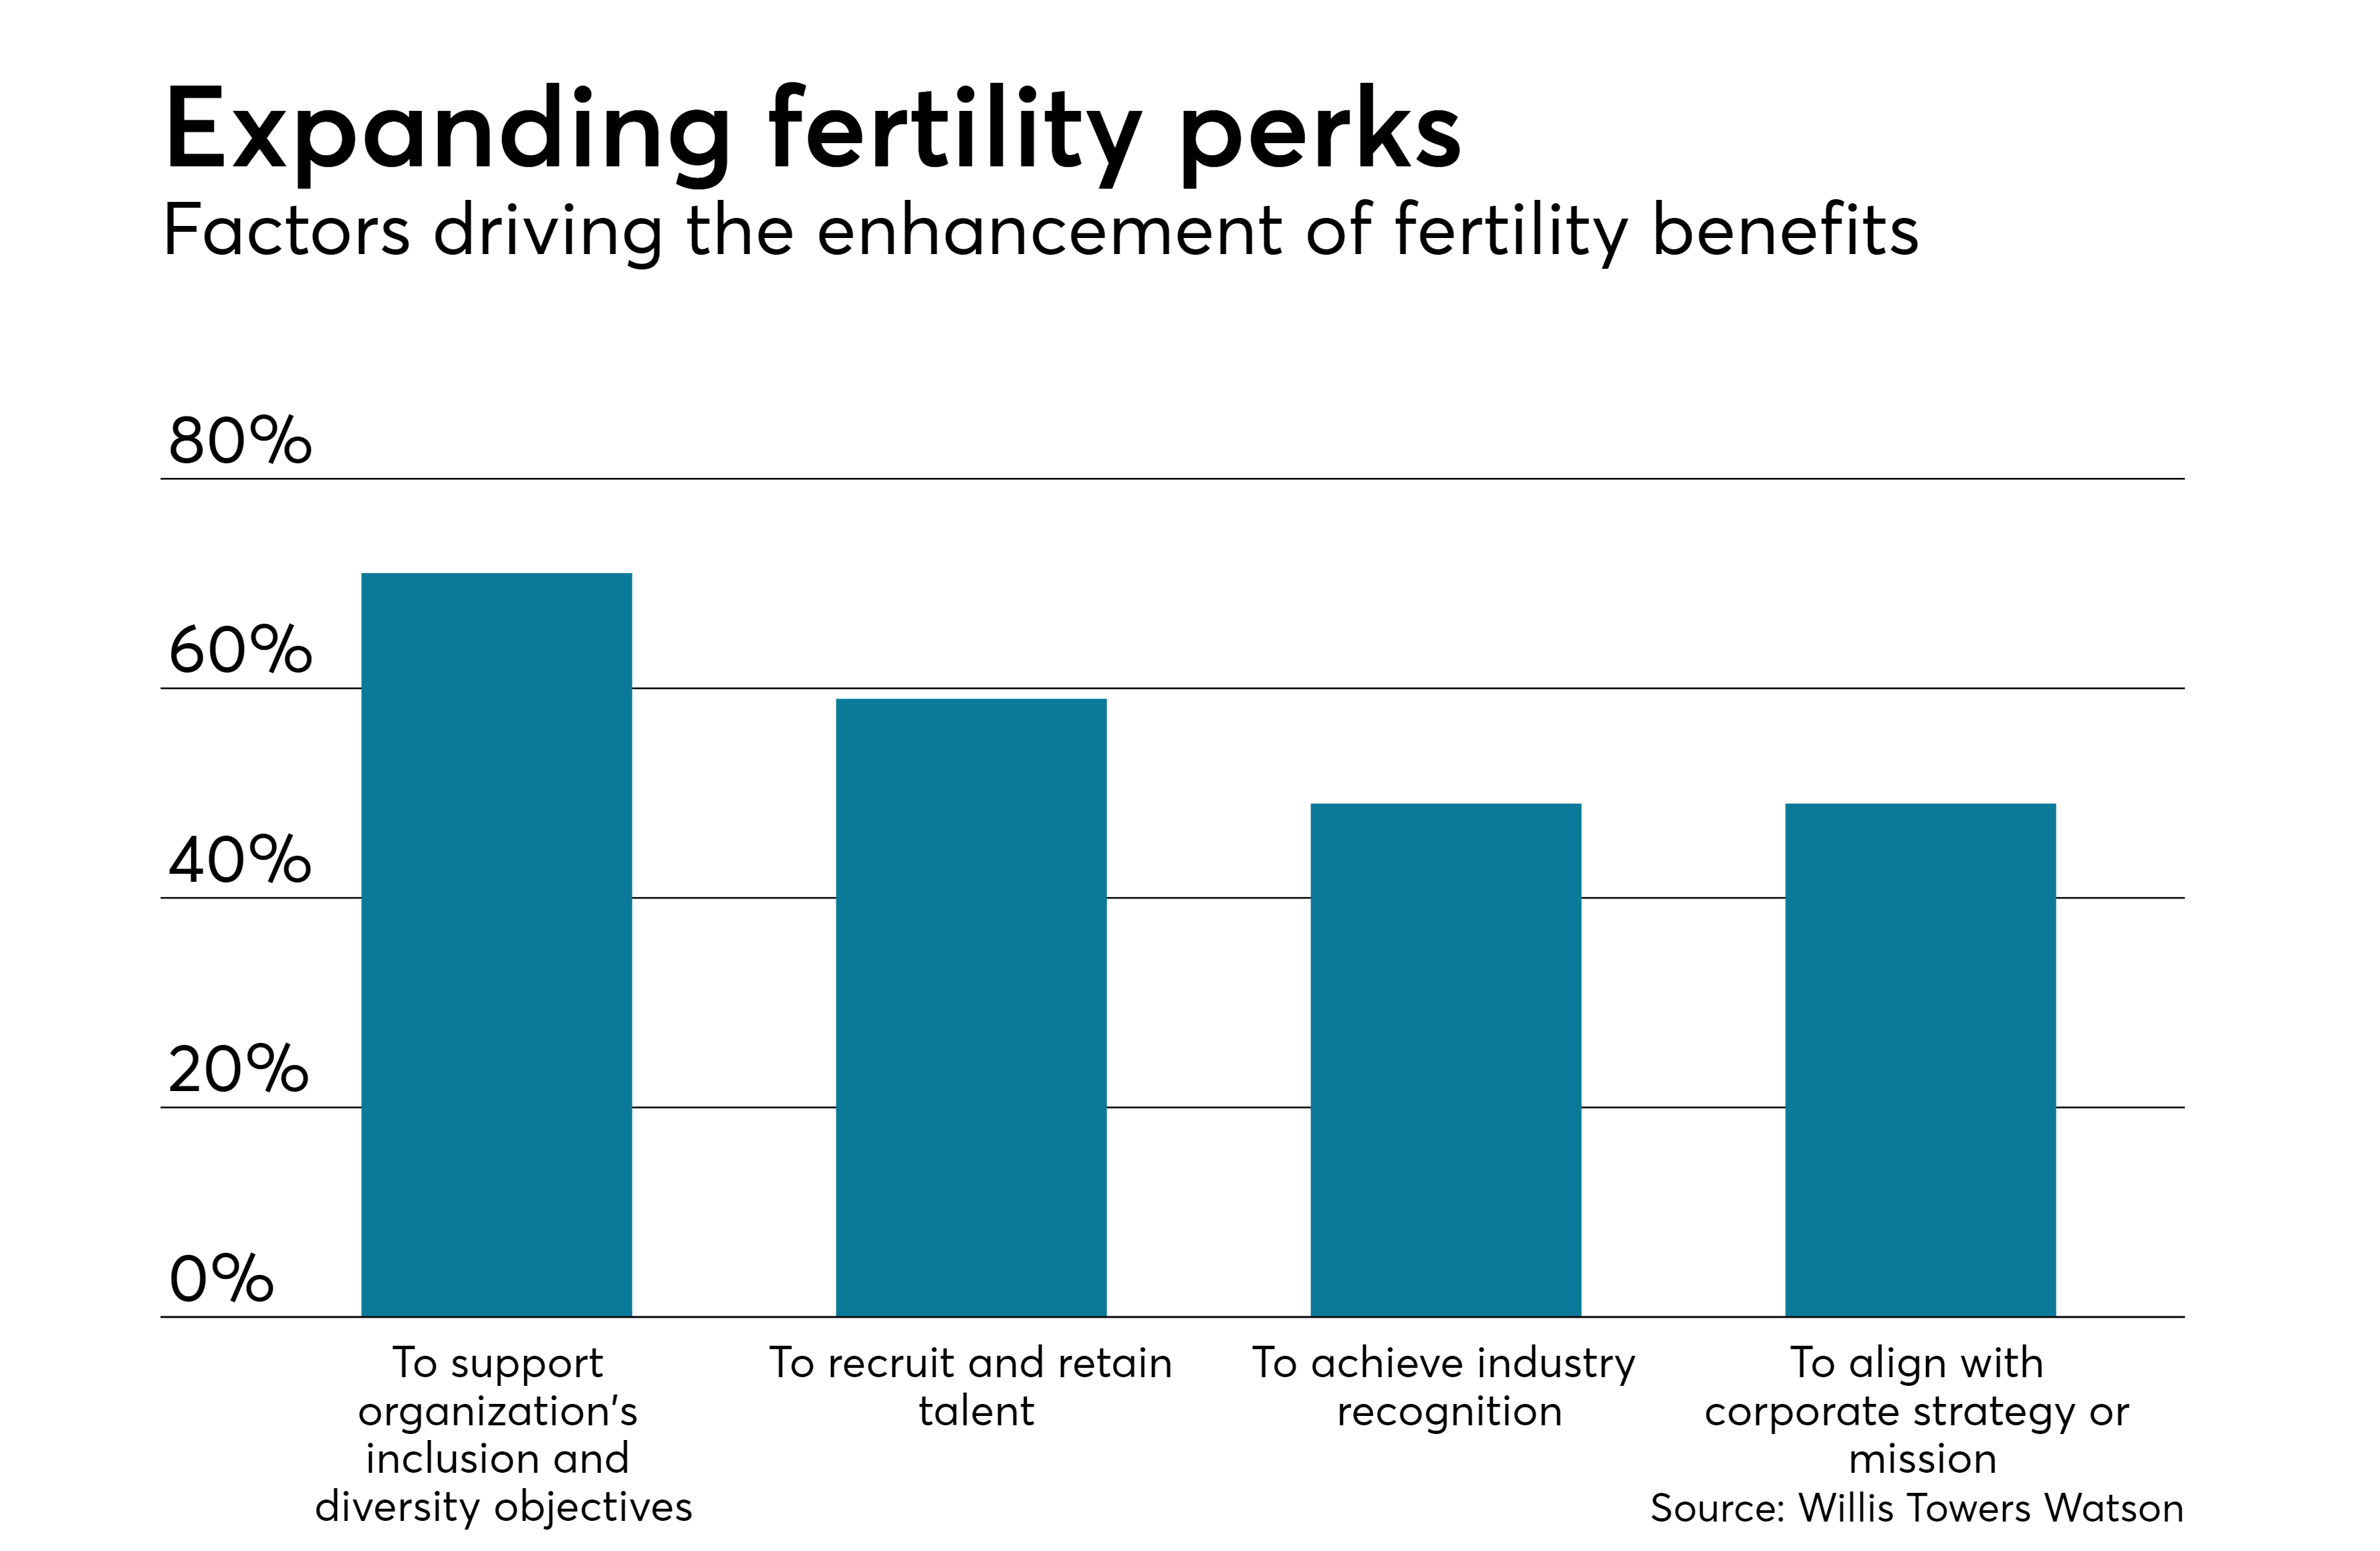 How companies can go above and beyond with fertility